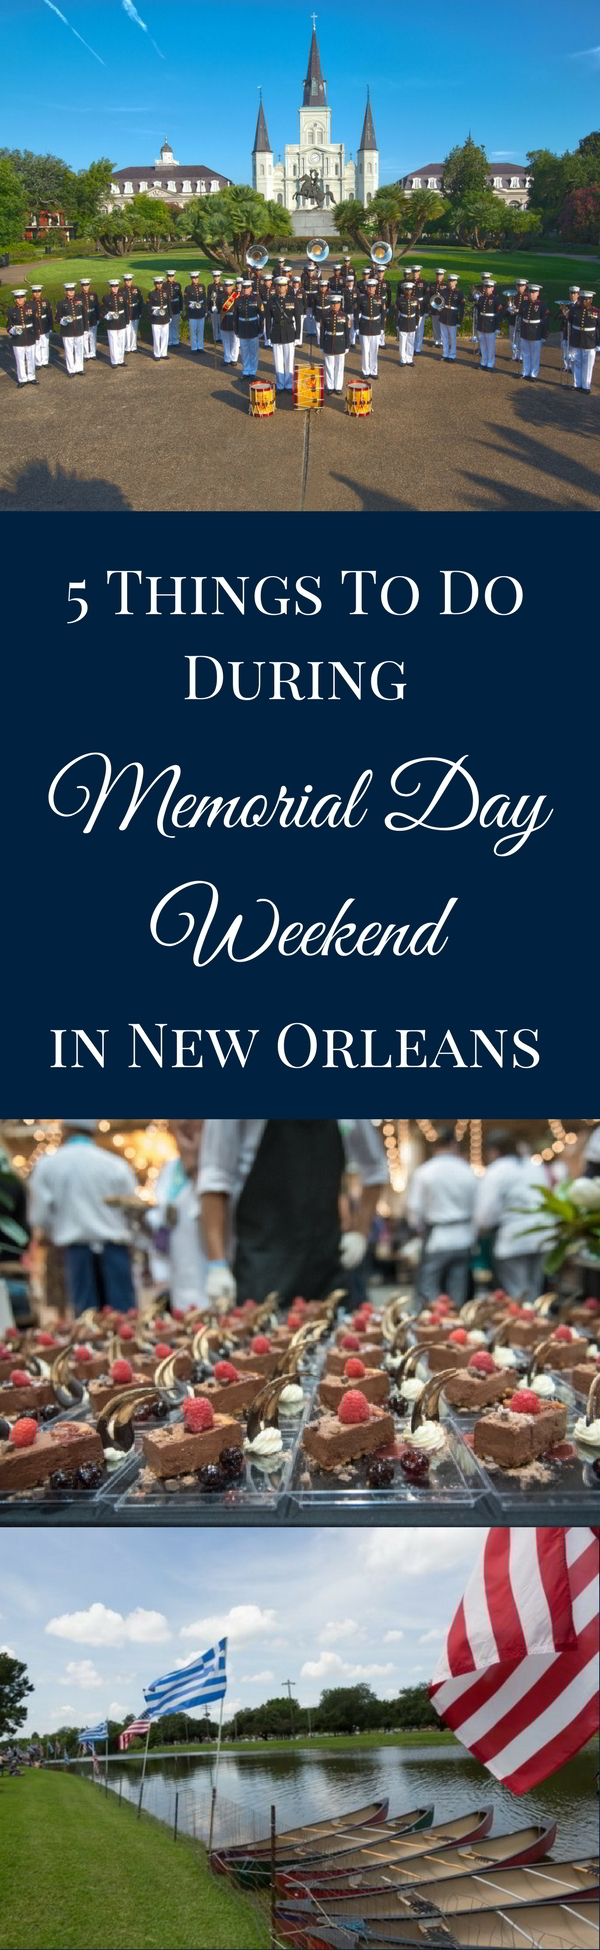 From Bayou Country SuperFest to the New Orleans Wine & Food Experience to honoring fallen soldiers at the National WWII Museum, there's plenty to do in New Orleans this Memorial Day weekend.